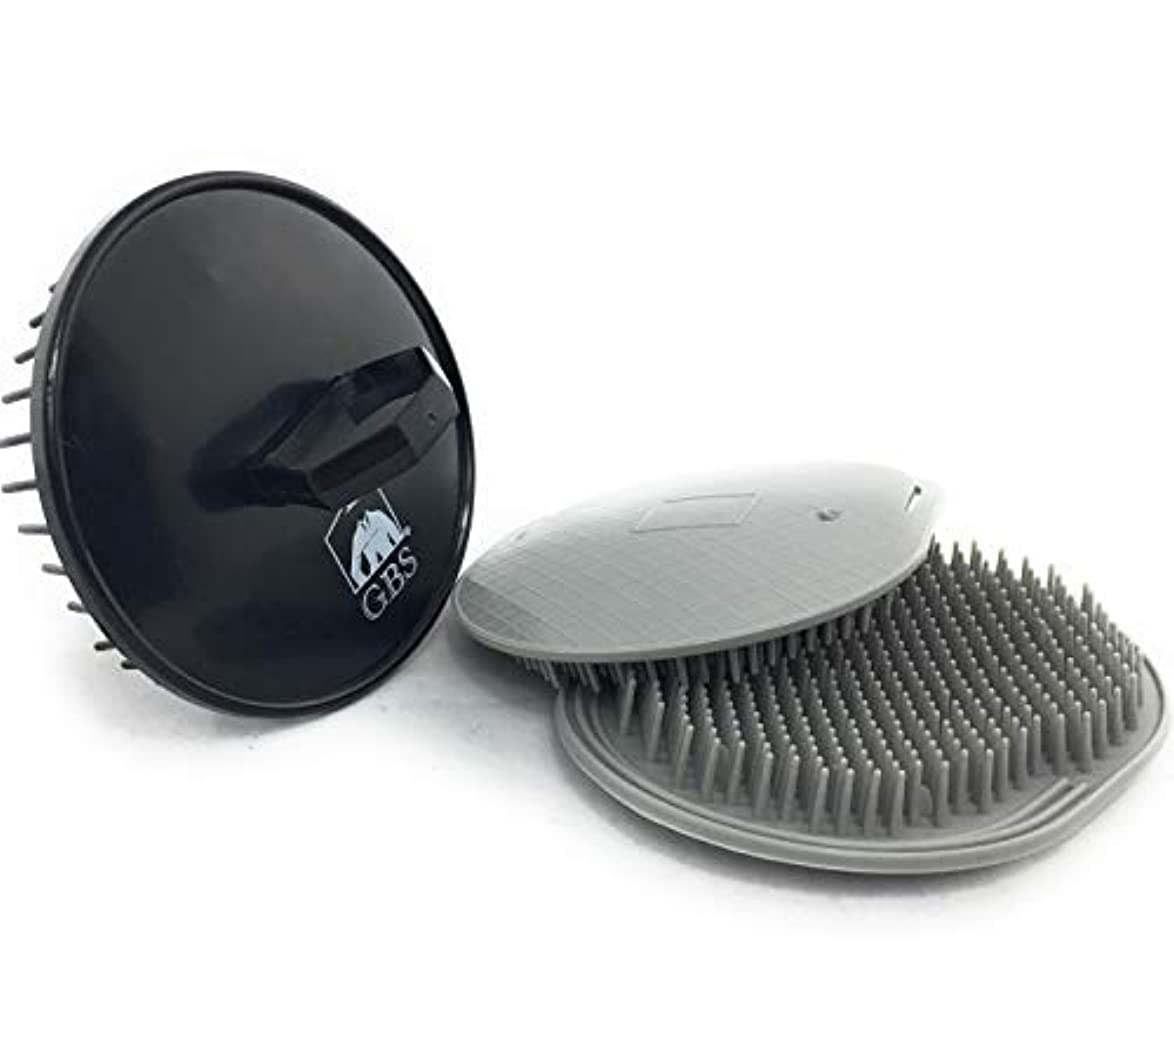 会計士マウント借りているGBS Soft Pocket Palm Brush. Massage and Head Scratcher. Made In USA 2-Pack - Gray Plus 1 Black Shampoo Brush -...